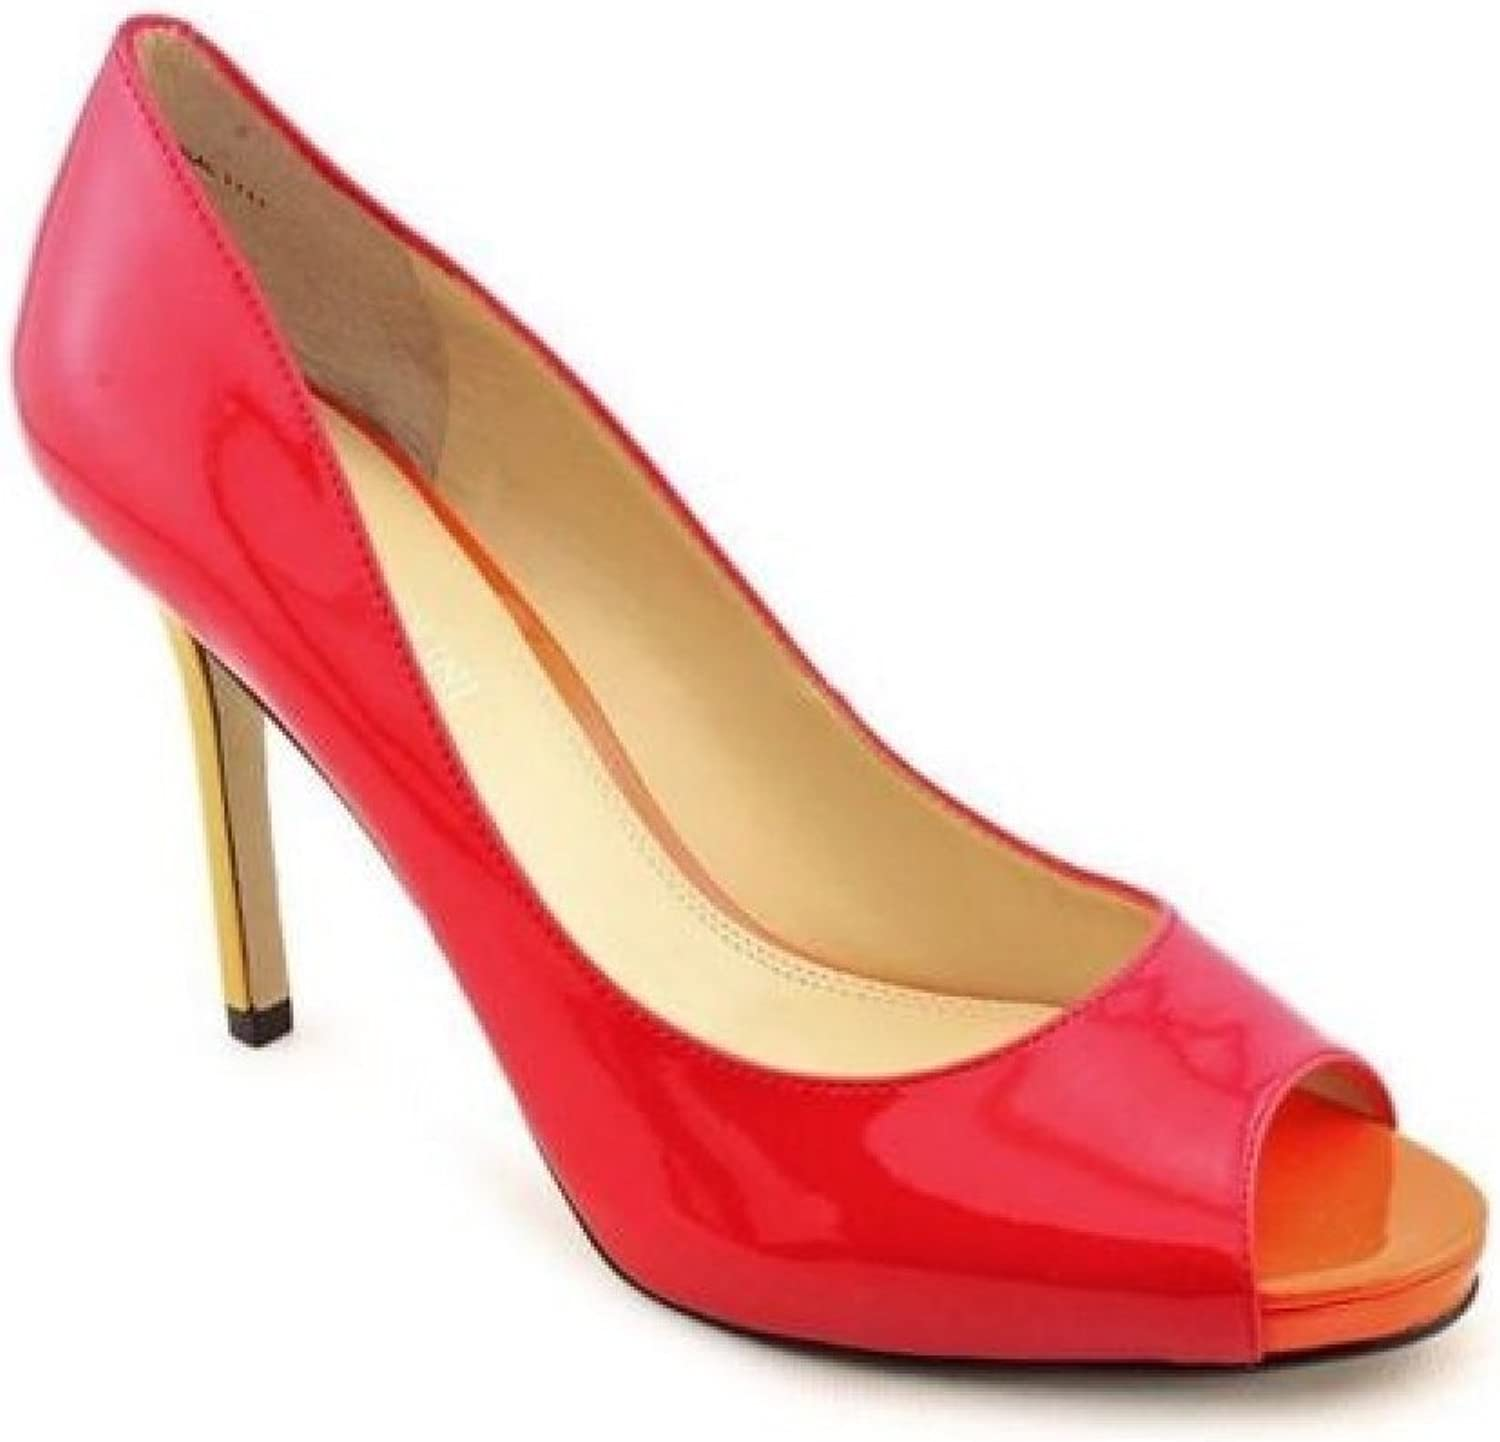 Enzo Angiolini Women's Maiven Pumps in Red Size 5.5